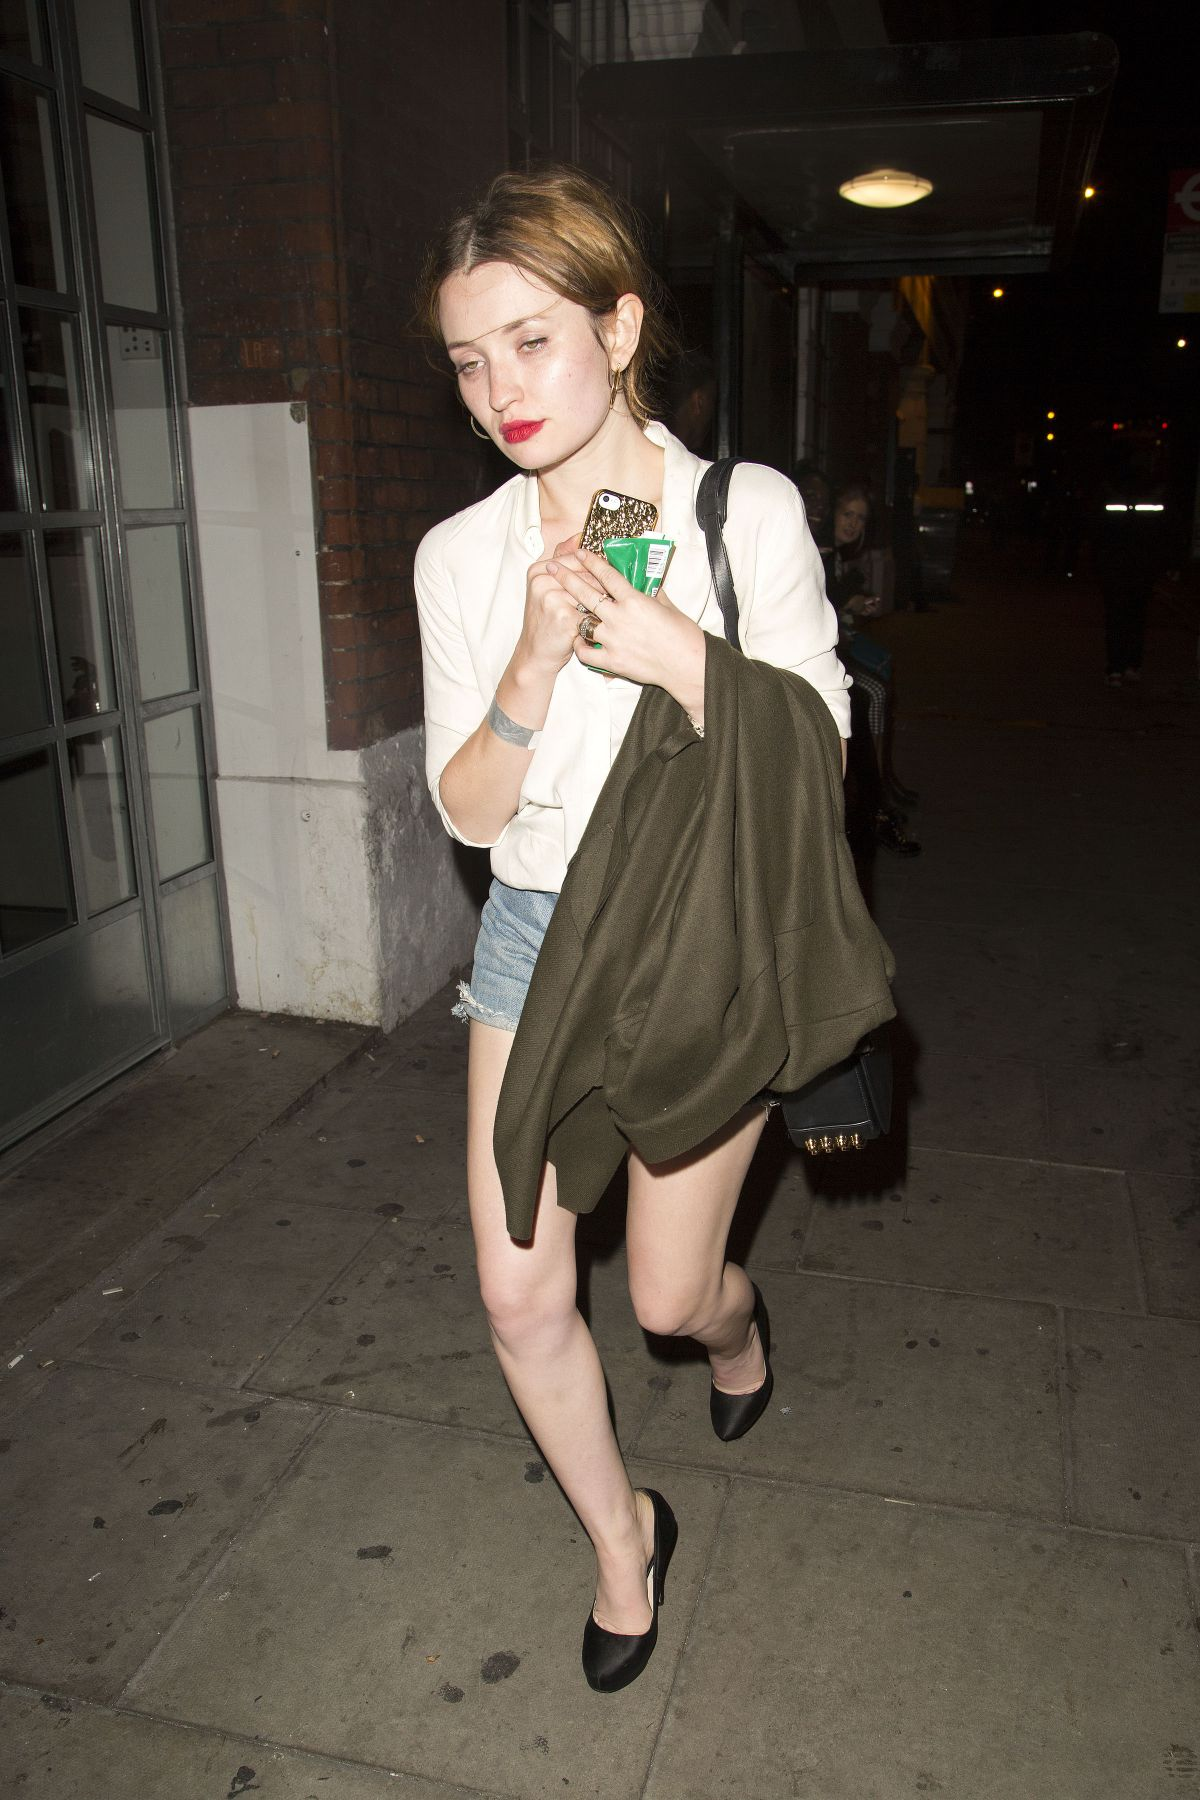 Paparazzi Emily Browning nude (95 foto and video), Ass, Paparazzi, Feet, cleavage 2020